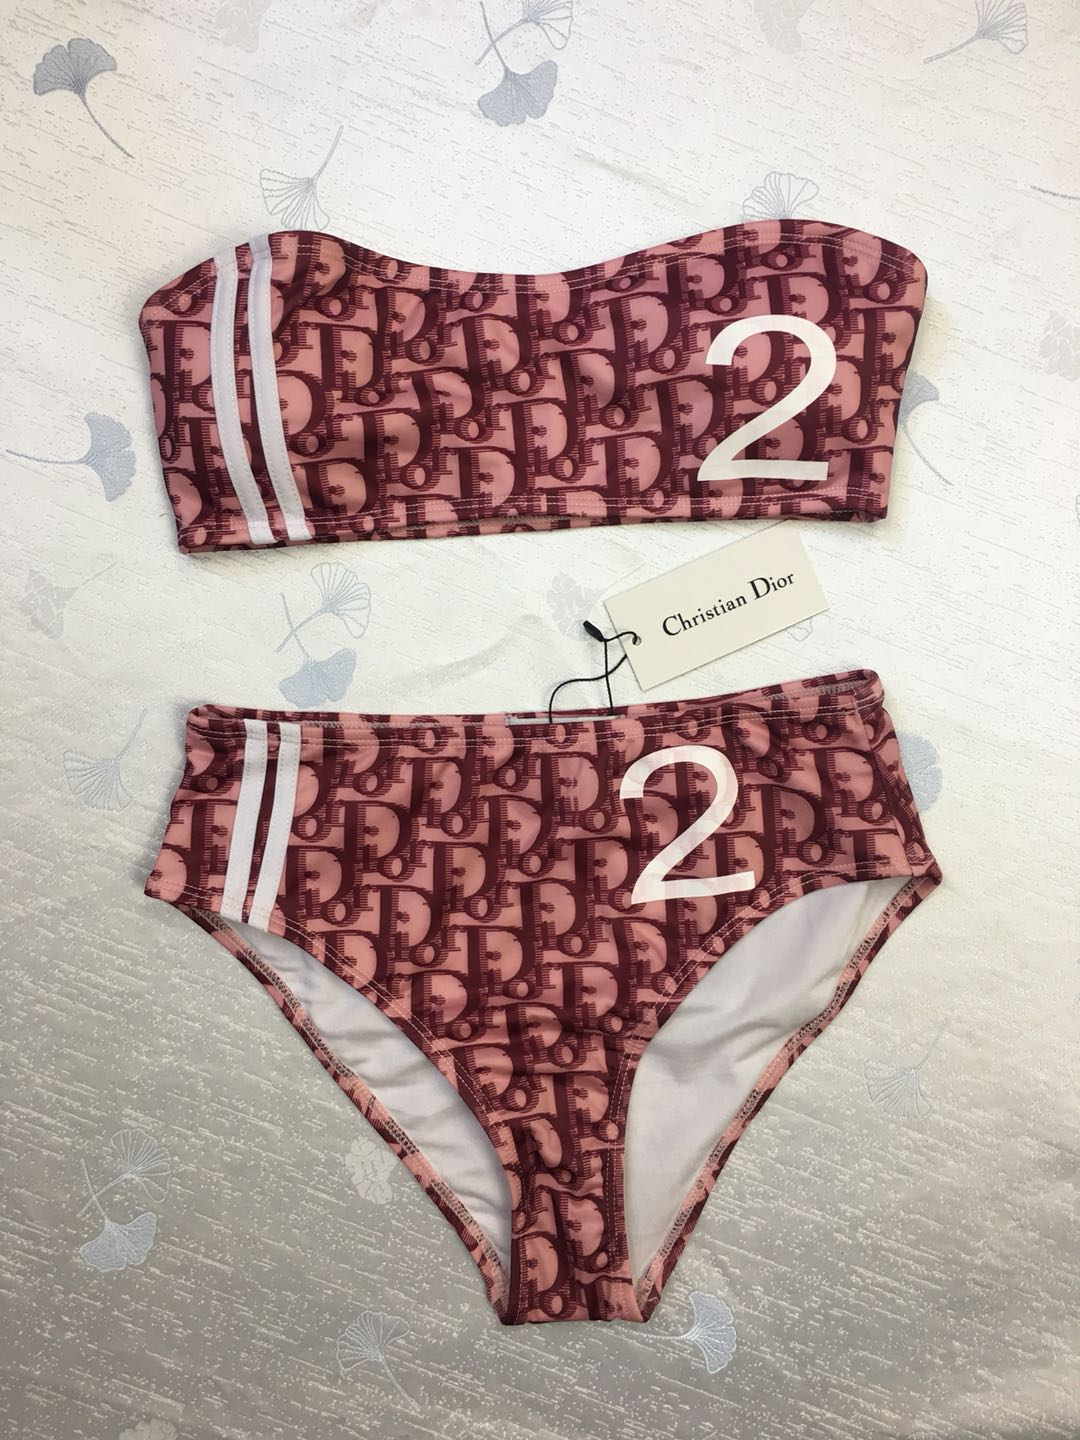 DIO07 New Dior Bikinis with number